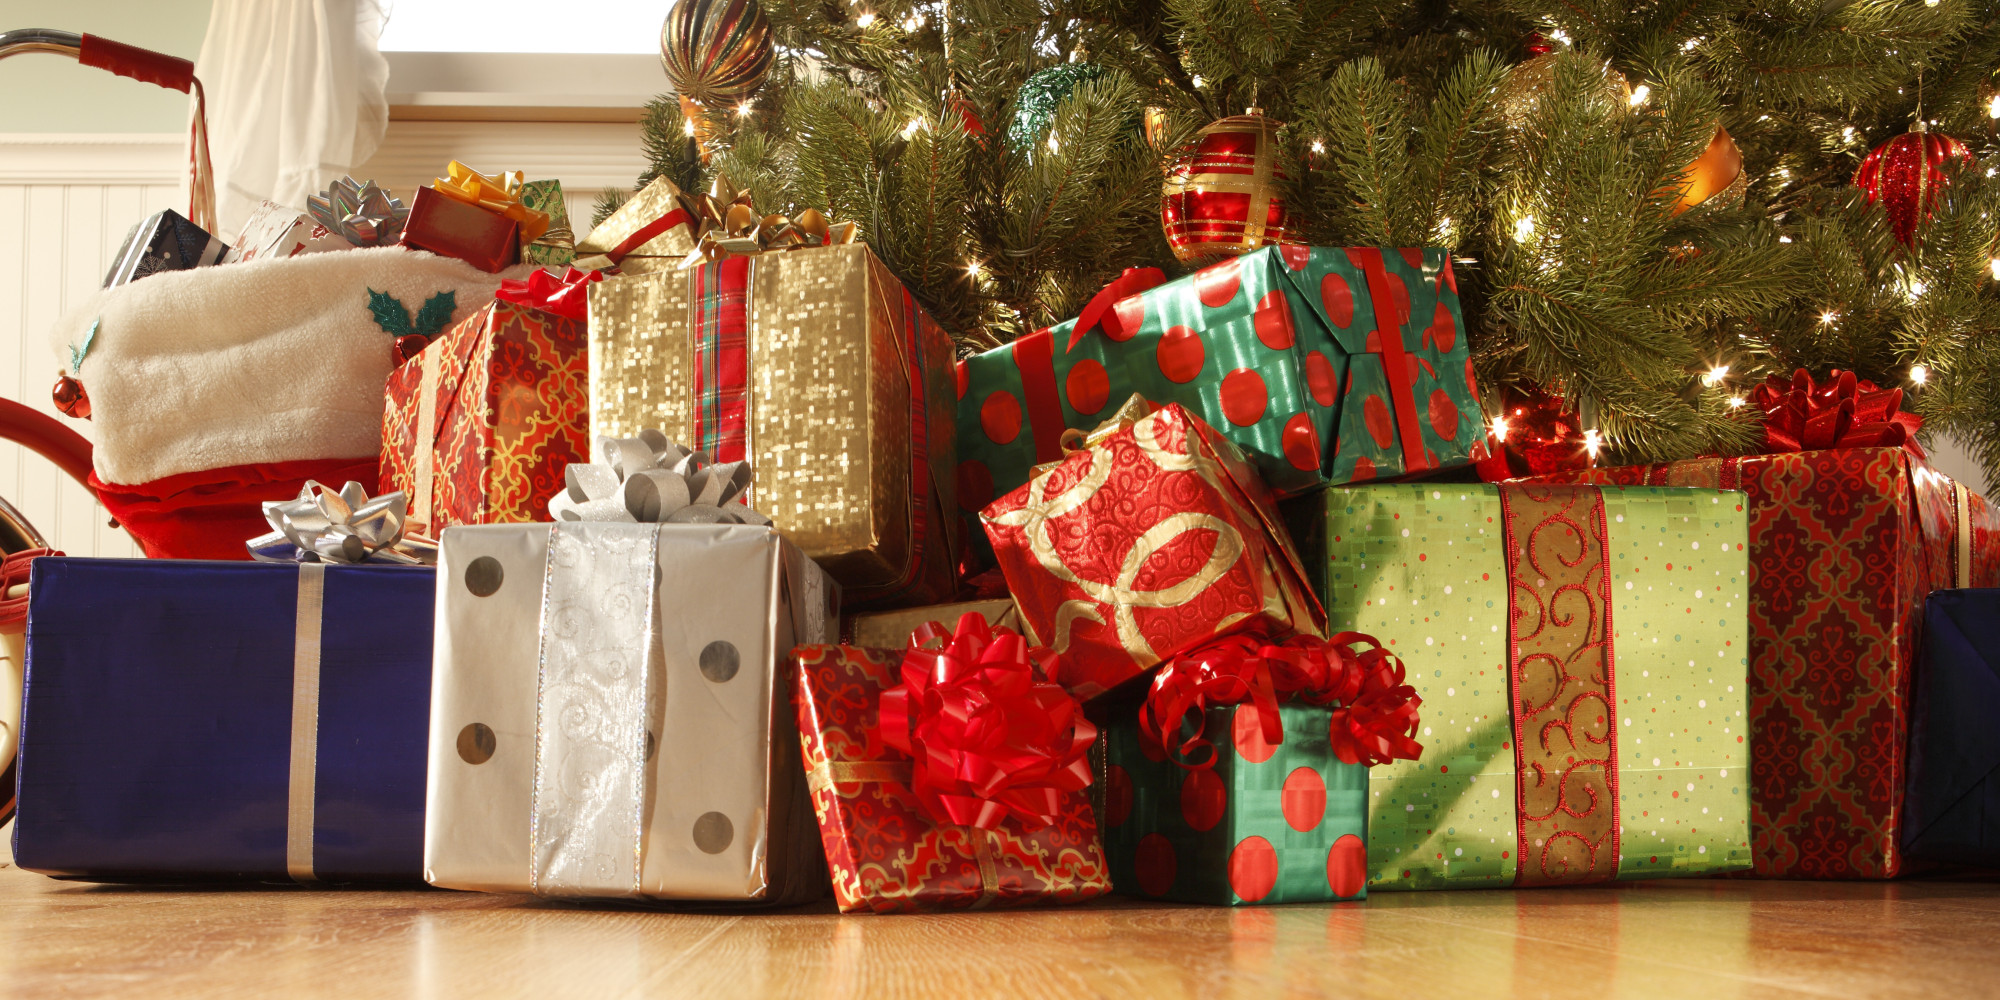 ThreeGift Christmas Parents Try To Bring Some Reason To